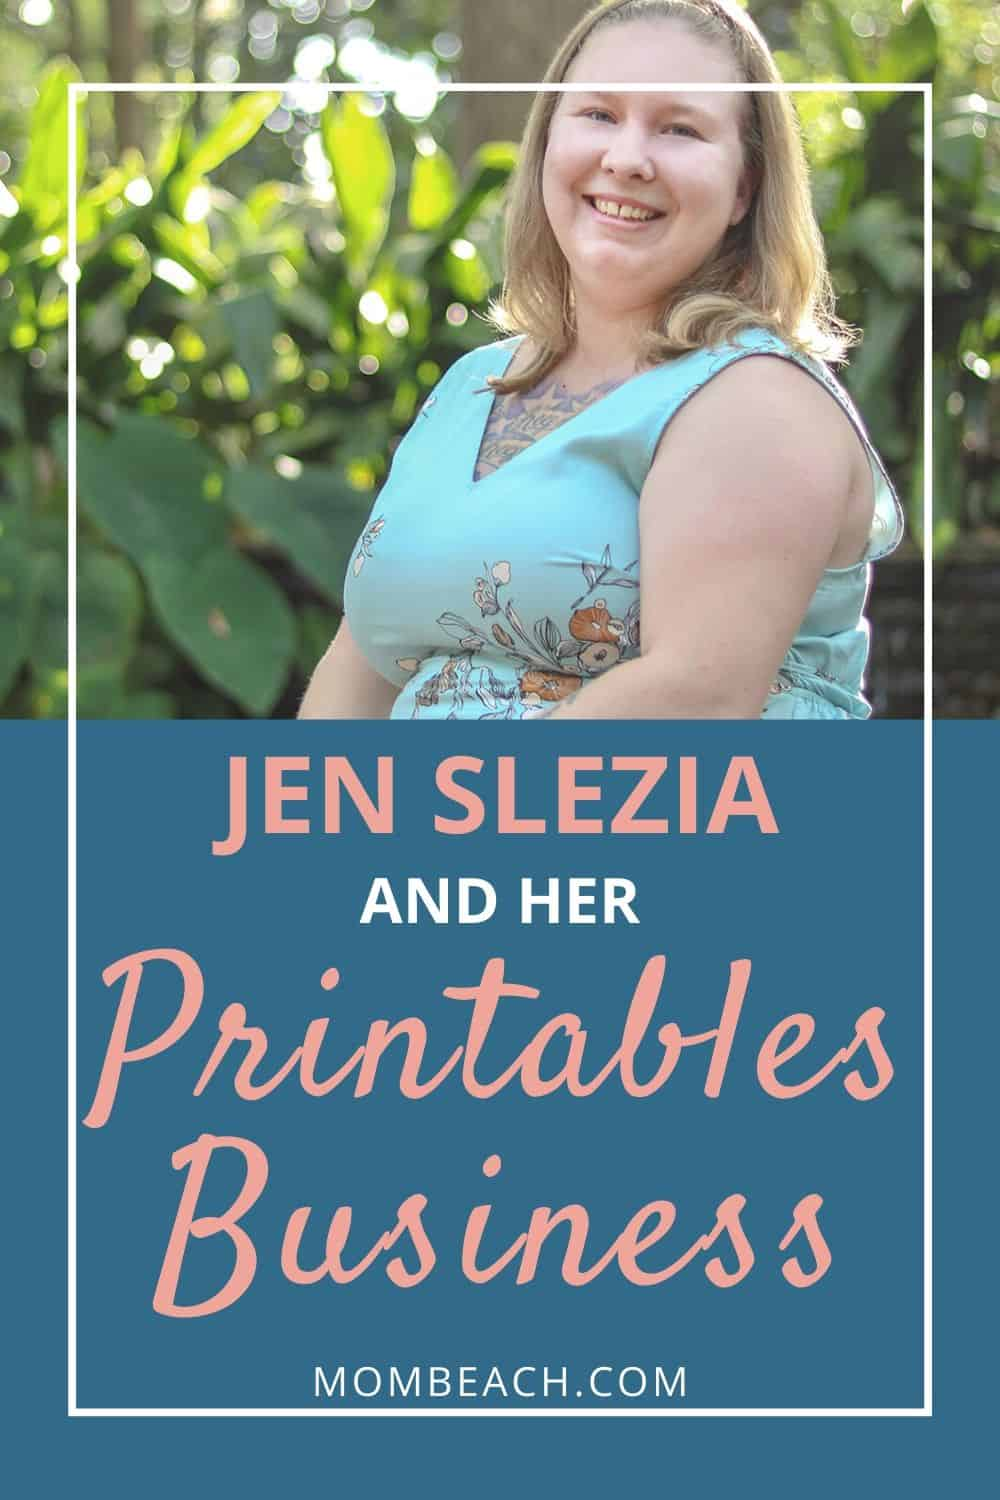 Jen Slezia has created a printables business, Journals to Freedom. In this interview, she reveals how she got started with her own printables business, printables marketing techniques, and more! Maybe you want to start your own business selling printables too! #printablesbusiness #printables #business #startabusiness #howtostartabusiness